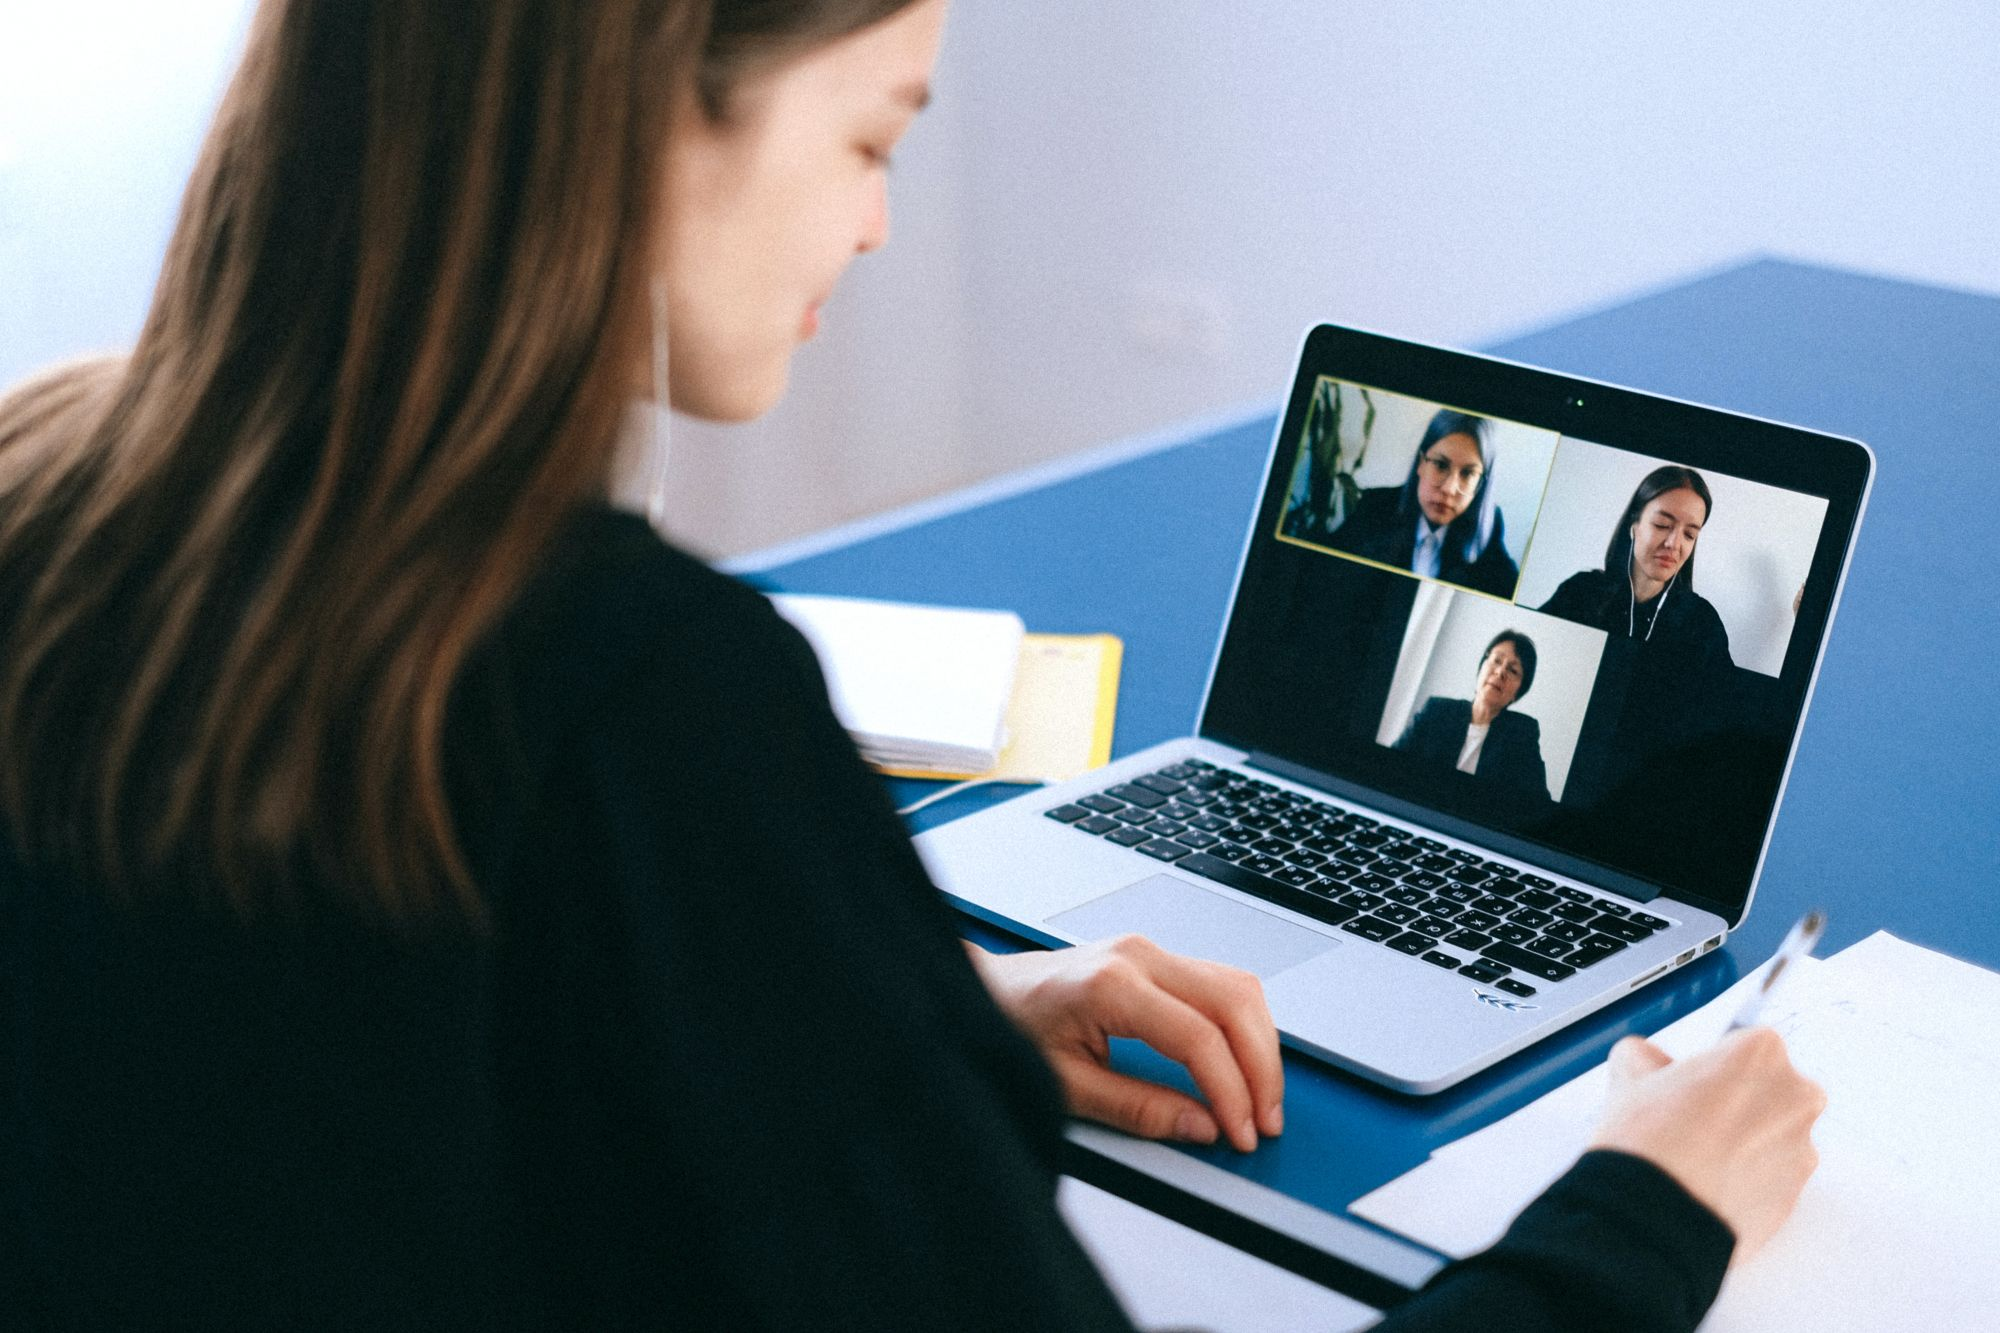 How to Make Your Zoom Meetings More Enjoyable For Everyone